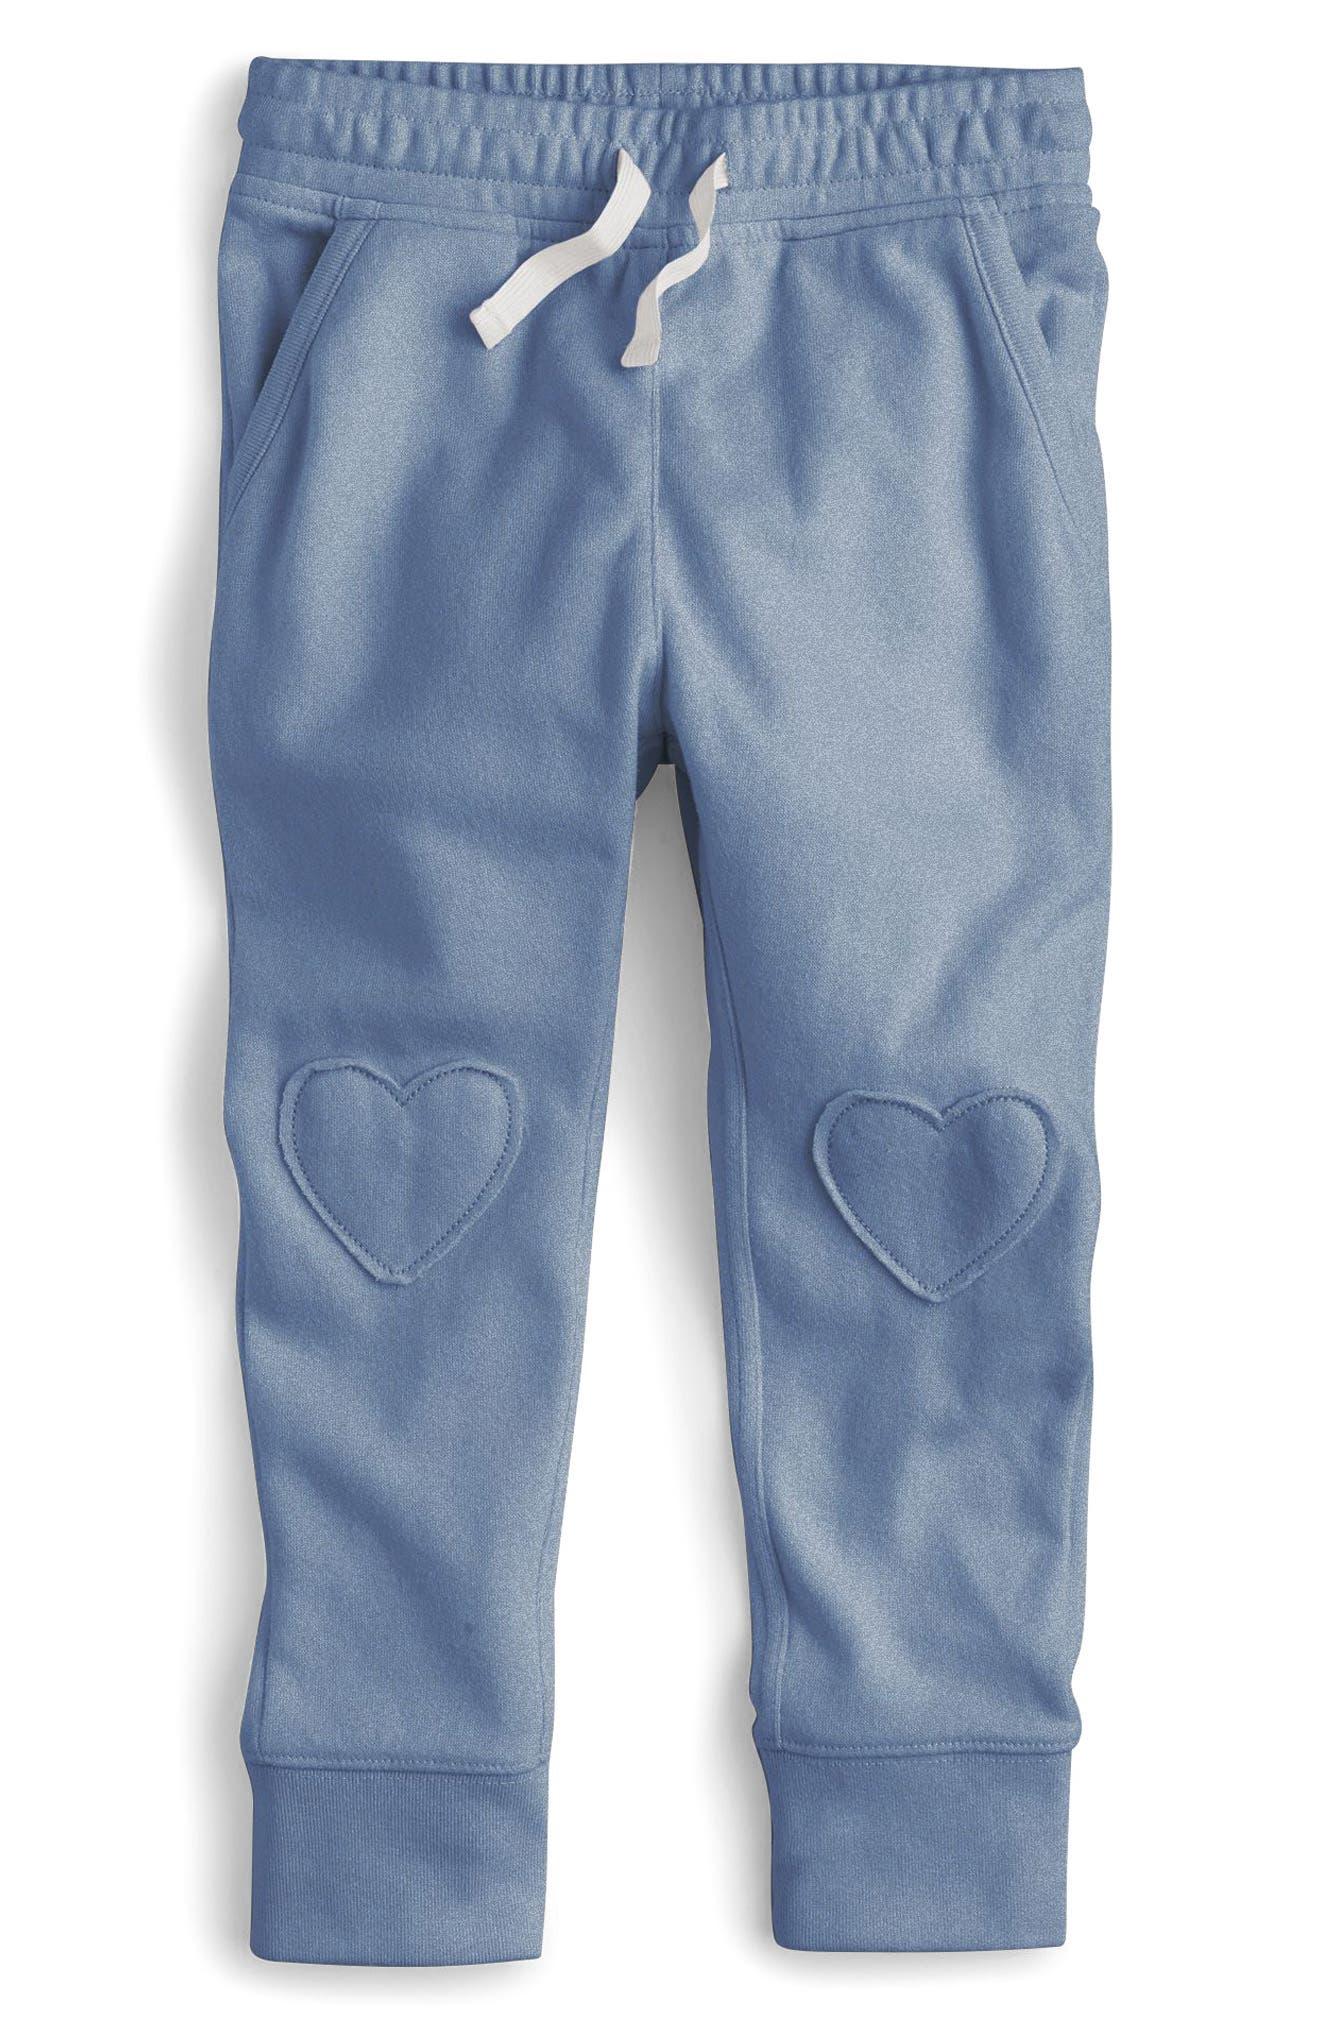 Heart Knee Sweatpants,                             Main thumbnail 1, color,                             Naples Blue